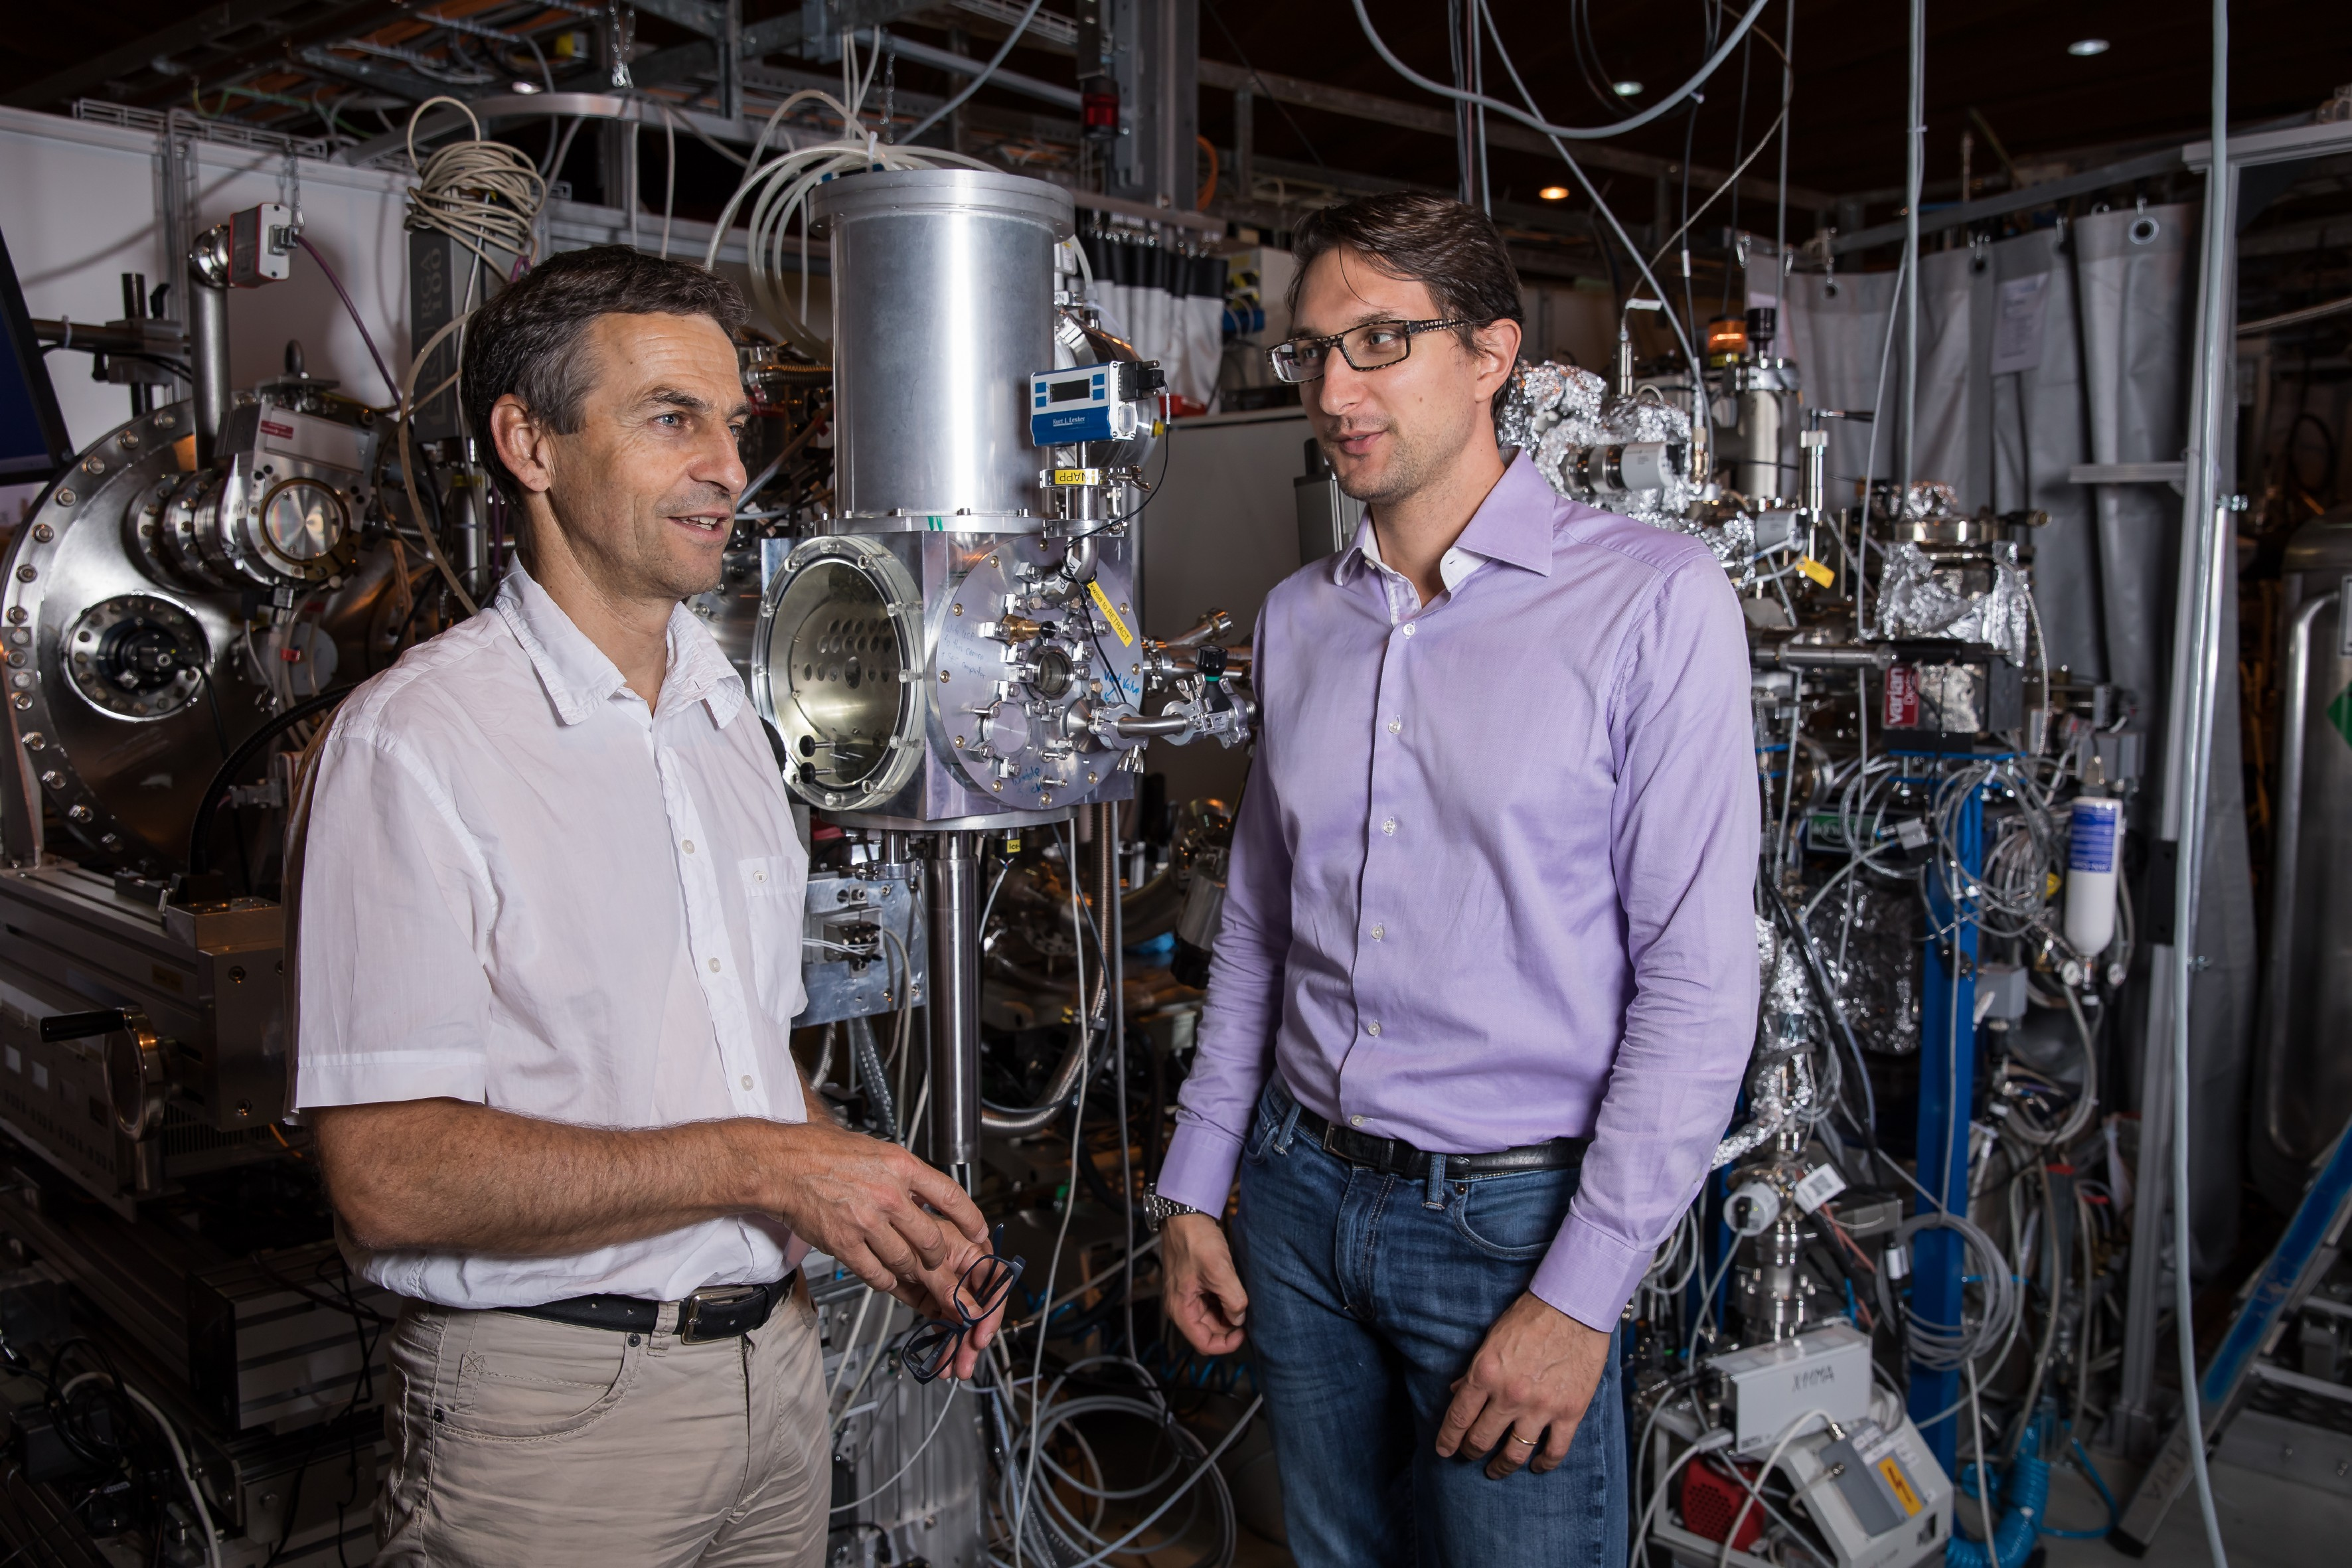 PSI researchers Markus Ammann (left) and Luca Artiglia at the experiment chamber they developed, which enabled them to recreate and capture processes as they occur in Earth's atmosphere with unprecedented precision. (Photo: Paul Scherrer Institute/Mahir Dzambegovic)